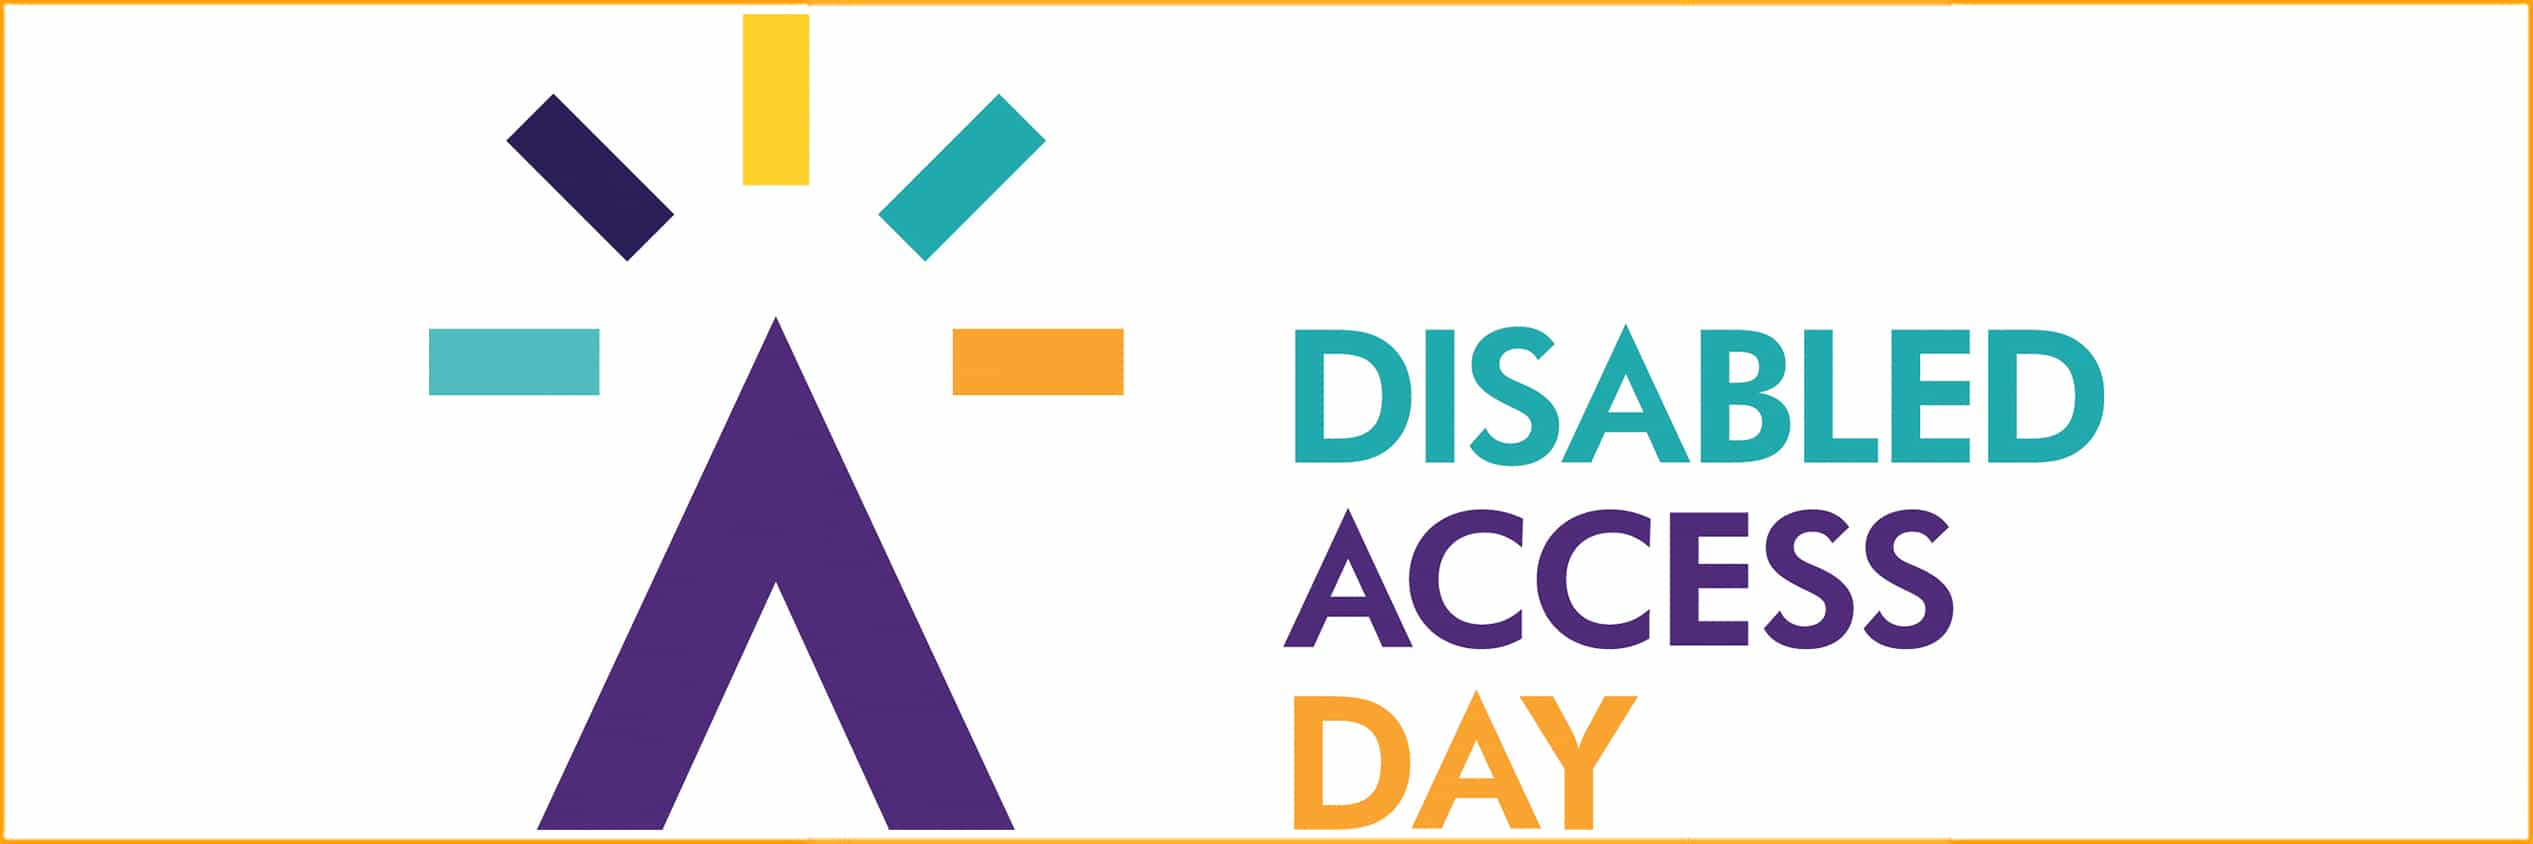 dad logo - Disabled Access Day: An Important Event for Everyone